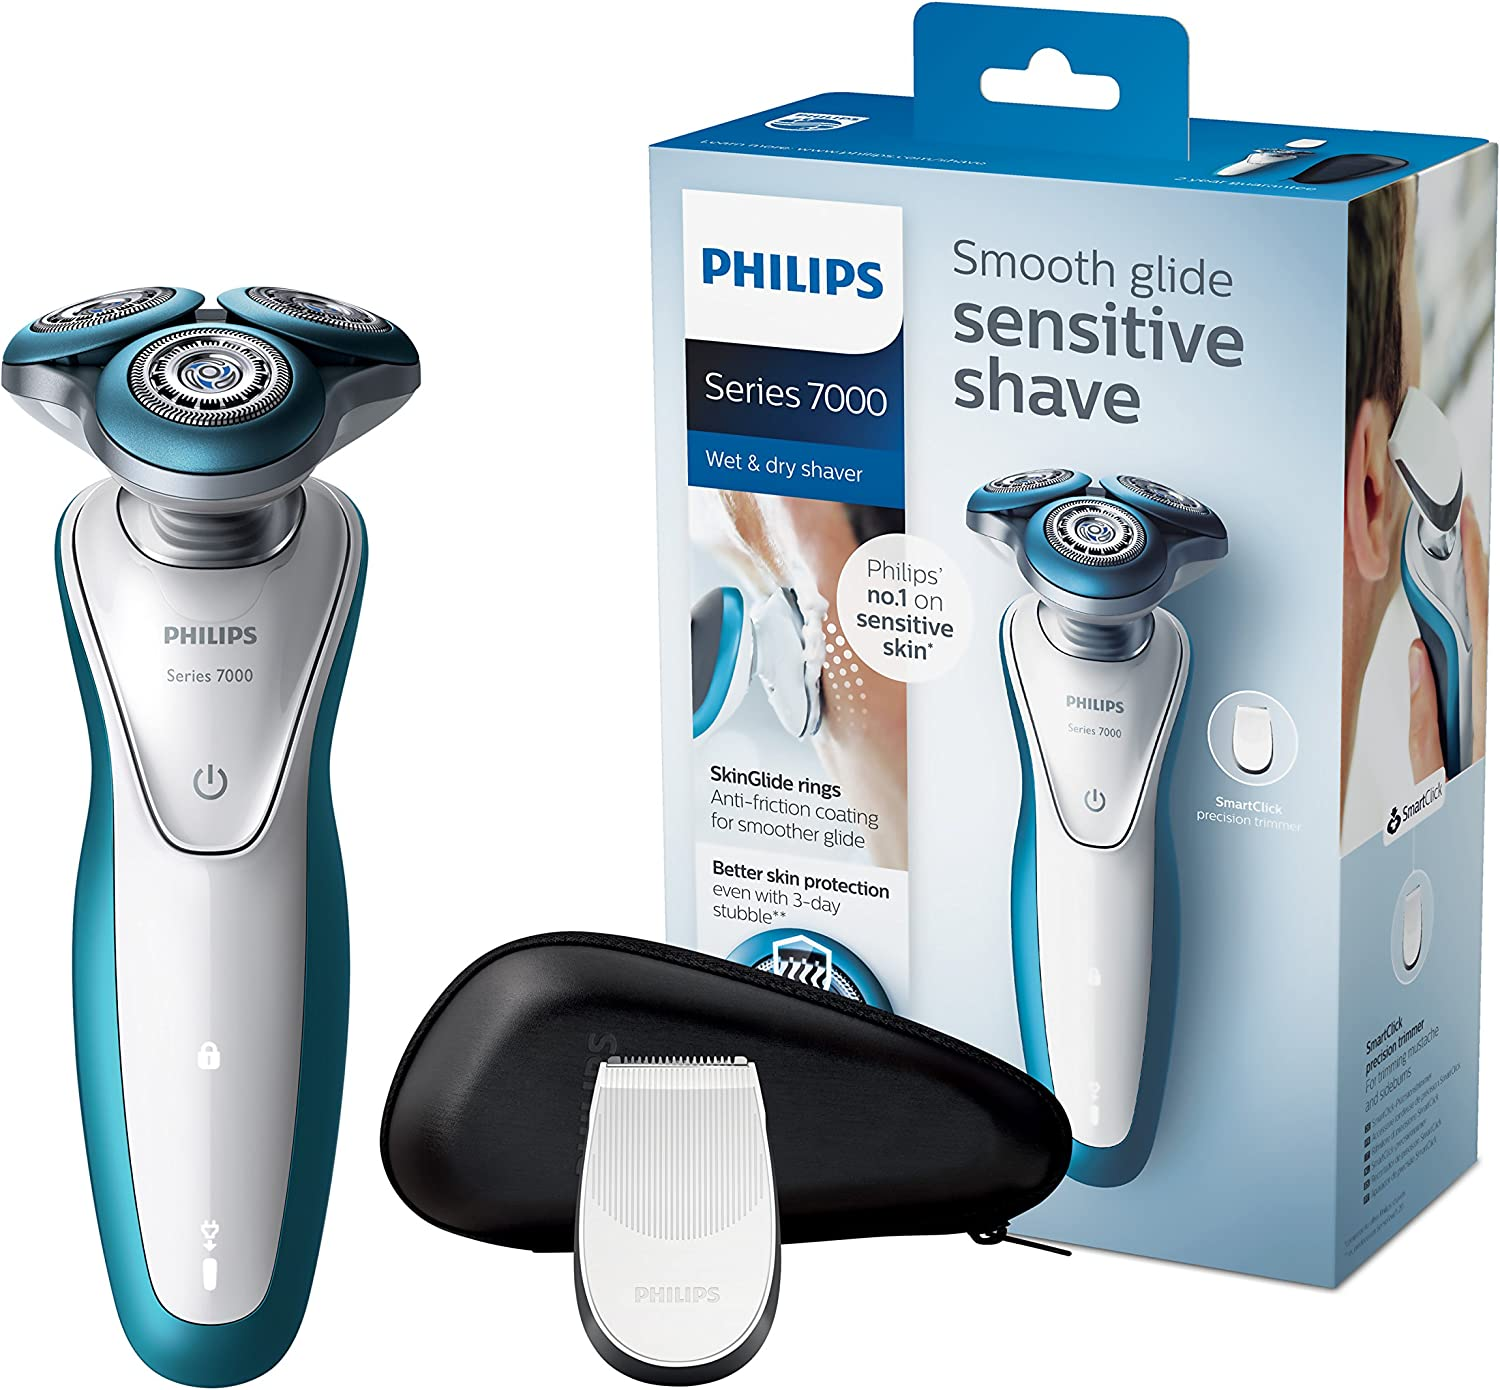 Philips SHAVER Series 7000 S7310 Rotación Recortadora Azul, Color blanco - Afeitadora (Batería/Corriente, Ión de litio, Rotación, Azul, Color blanco, LED, Ergonomic ...